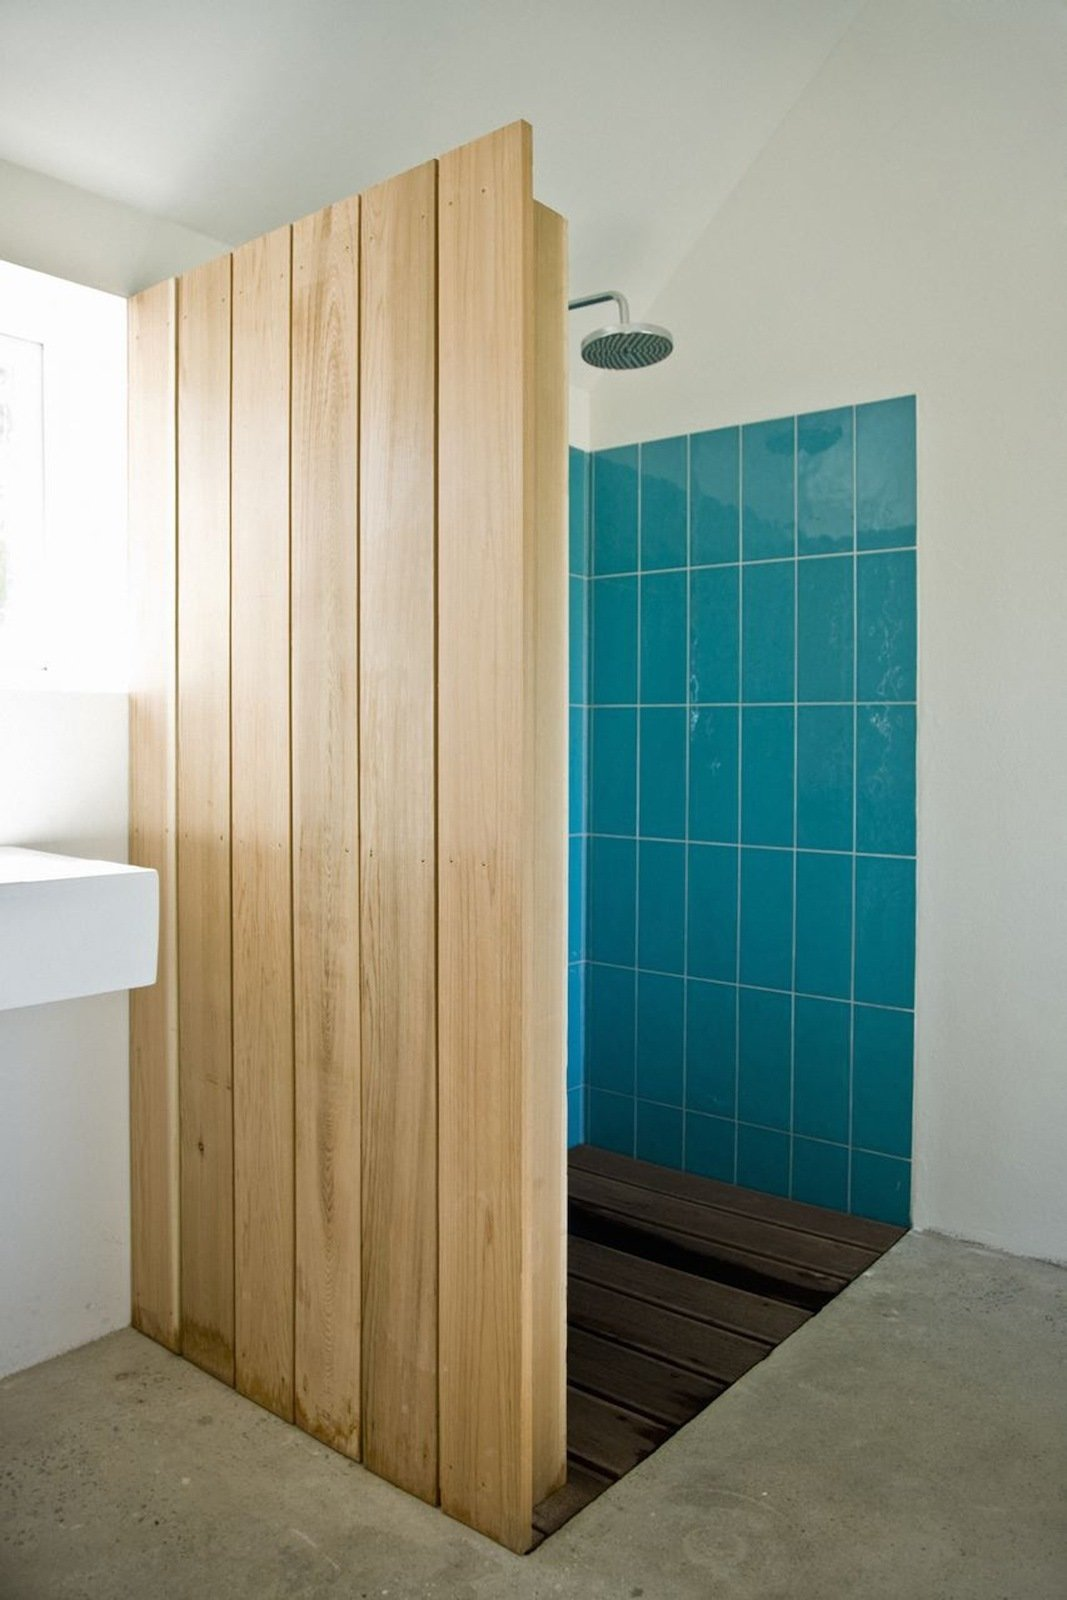 """Colored tiles in the shower are revealed behind a cedar wood wall. """"The sound of falling water on wood and the surrounding fields form the background,"""" say the architects. """"This was our way of introducing an immaterial idea of what luxury actually could be about.""""  Barn Renovation Ideas by Miquel Sune from An Idyllic Swedish Summerhouse"""